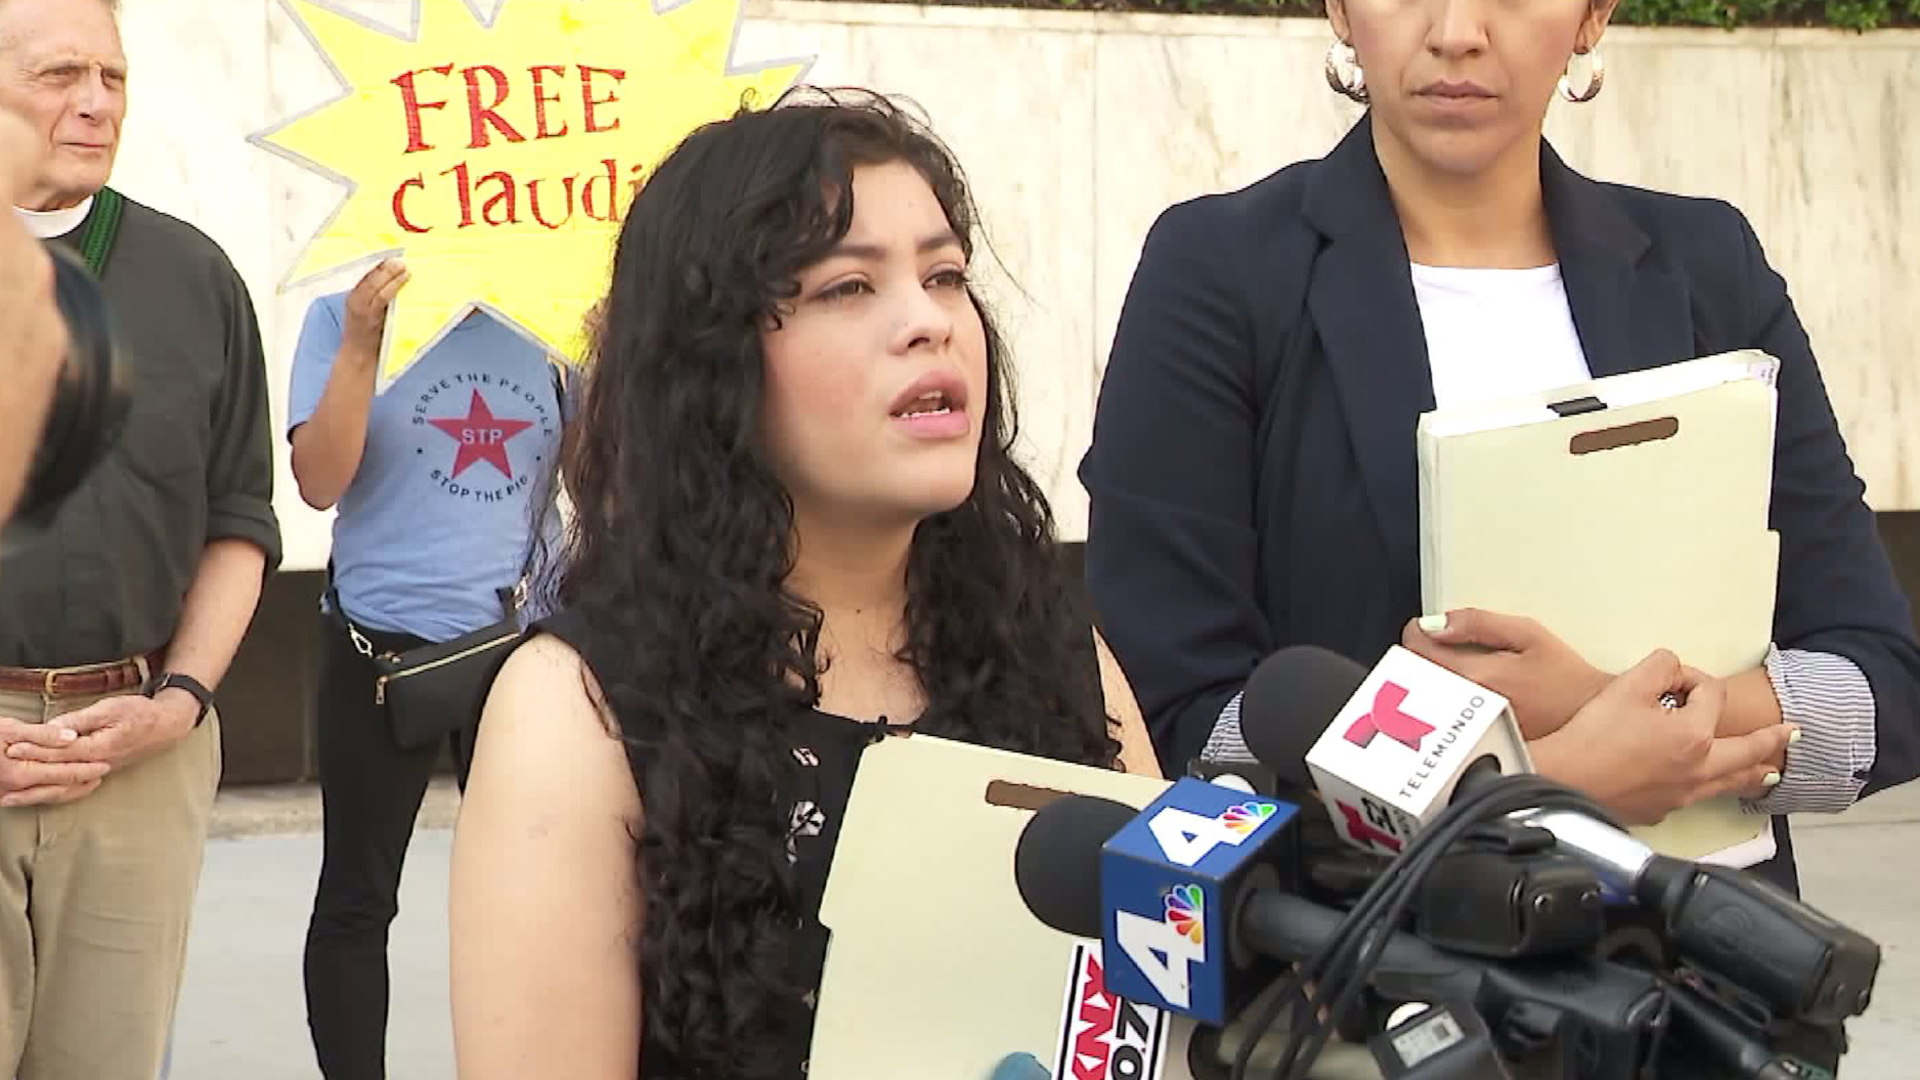 Claudia Rueda speaks in downtown L.A. about her attorney's of her application for DACA on June 19, 2017. (Credit: KTLA)